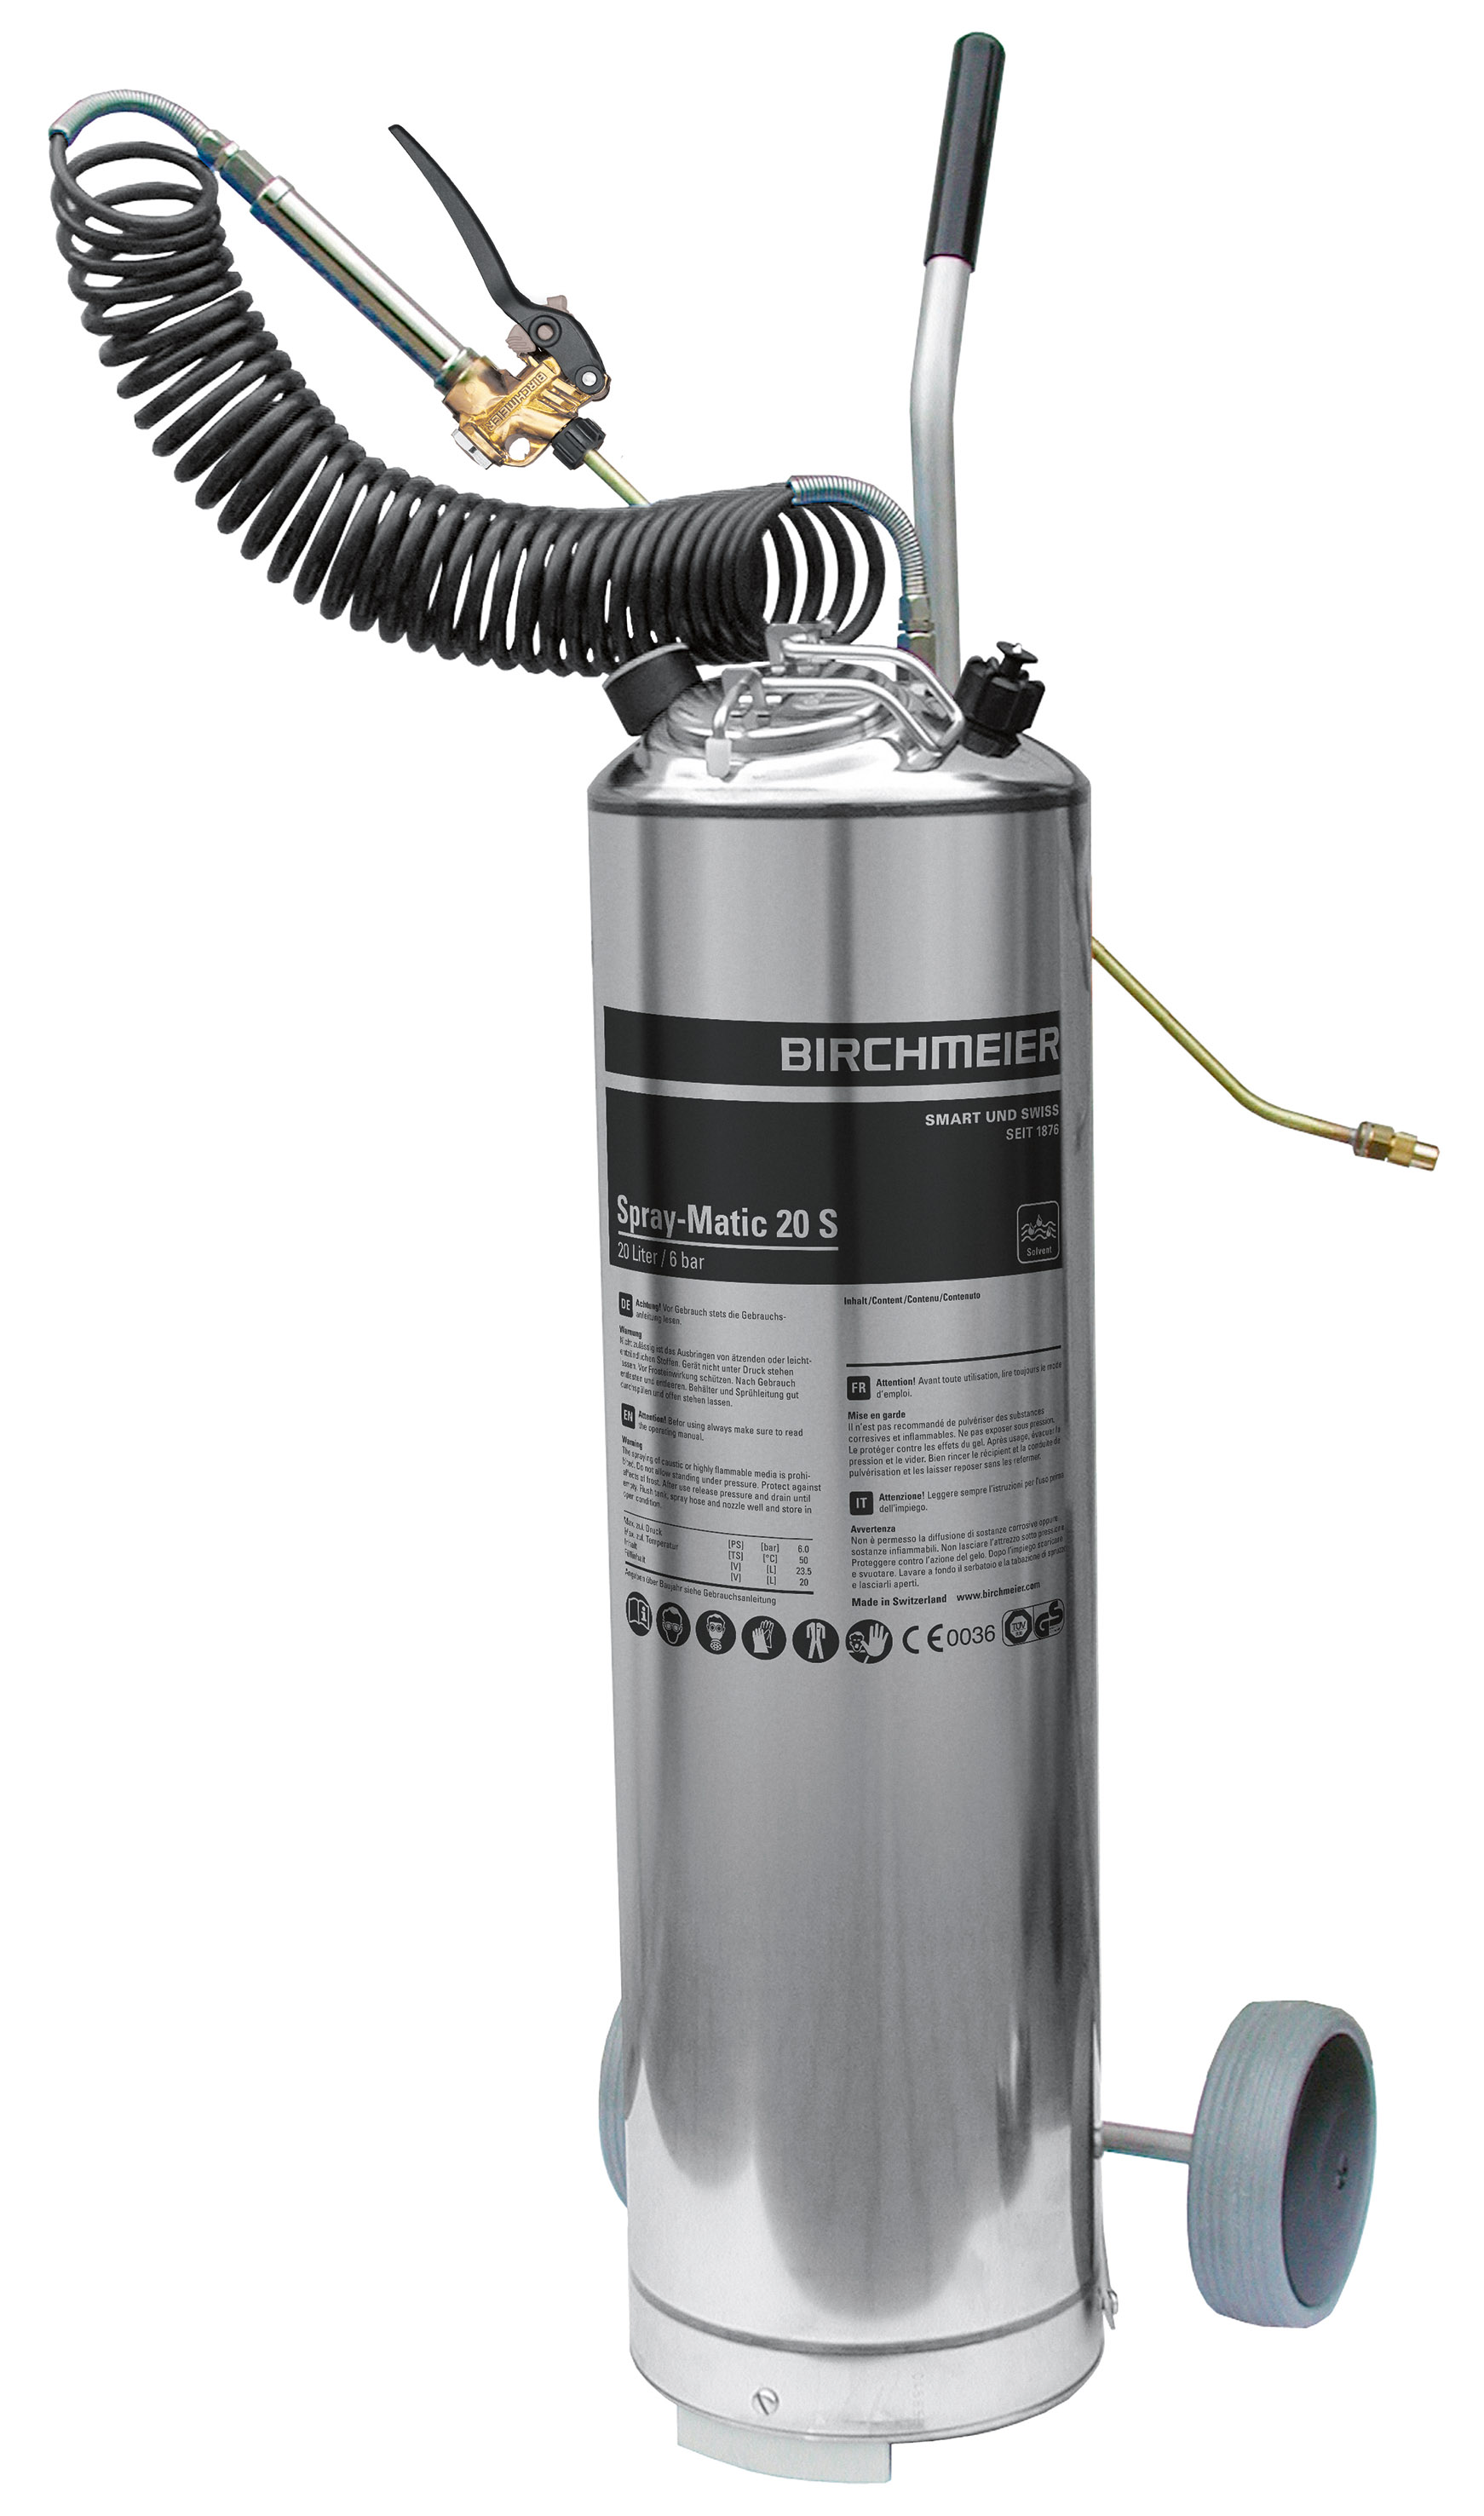 Spray-Matic 20 S without reducing valve